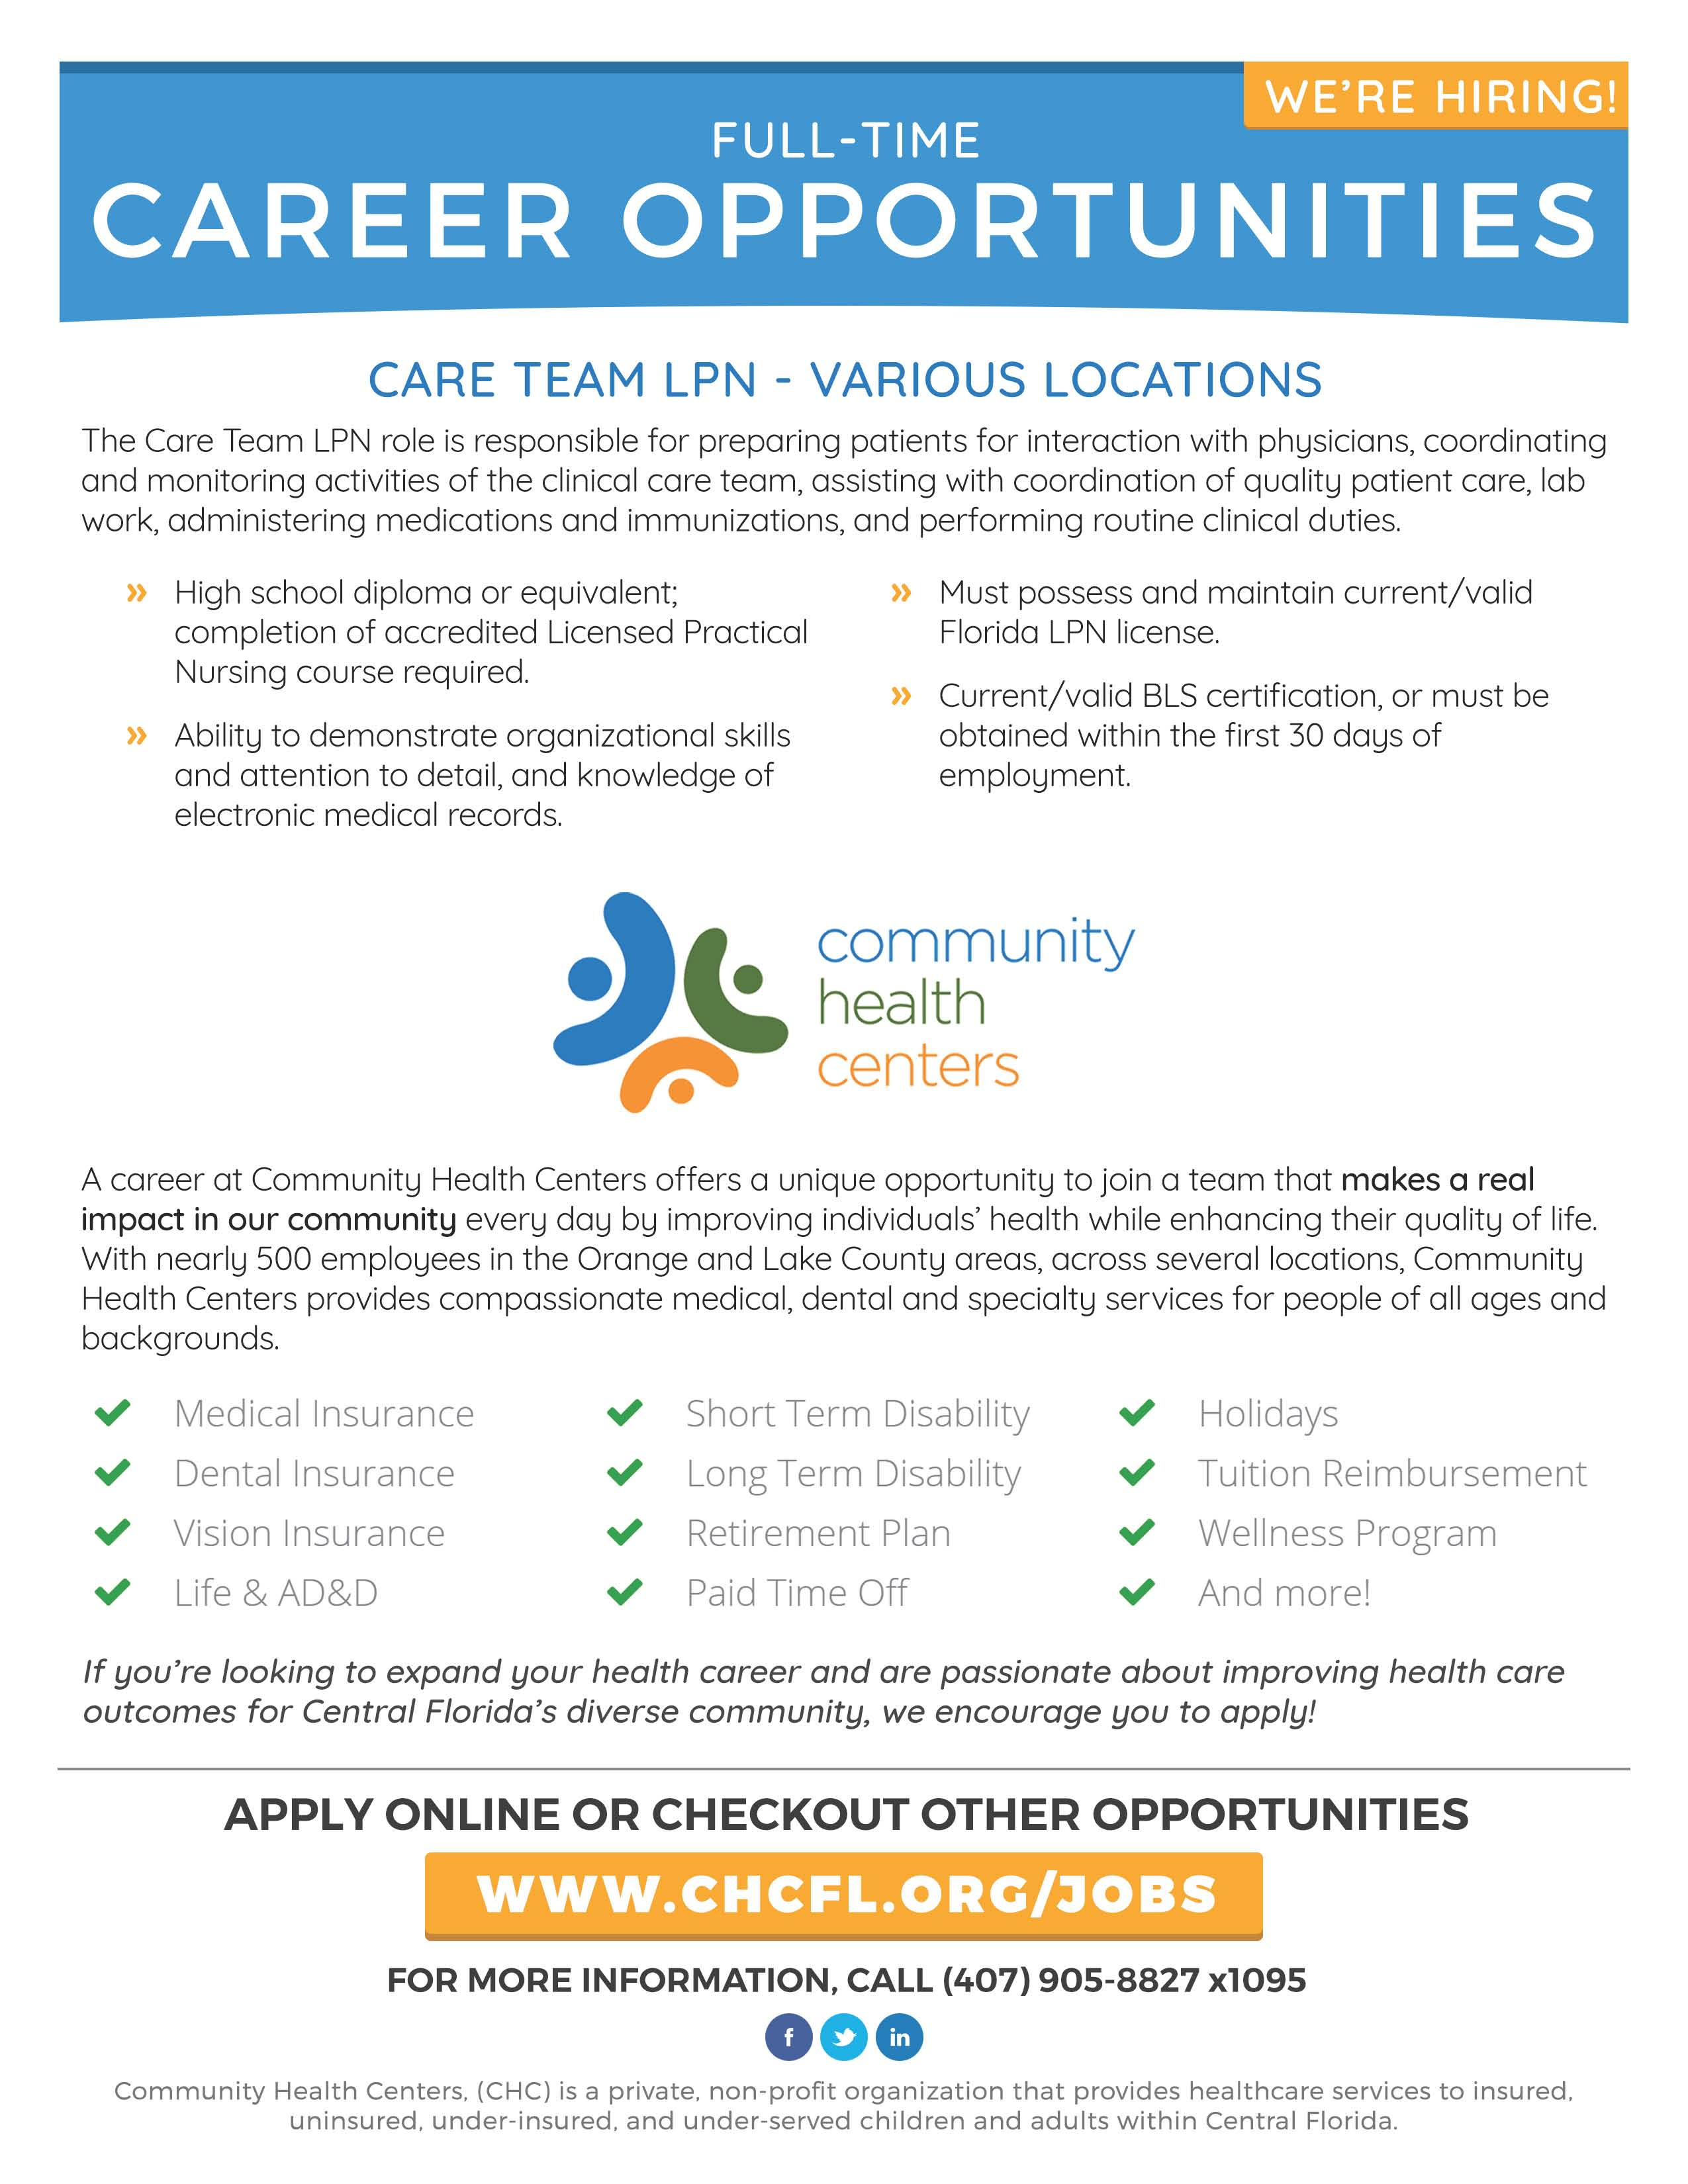 Community Health Centers Hiring Lake Techs Career Center